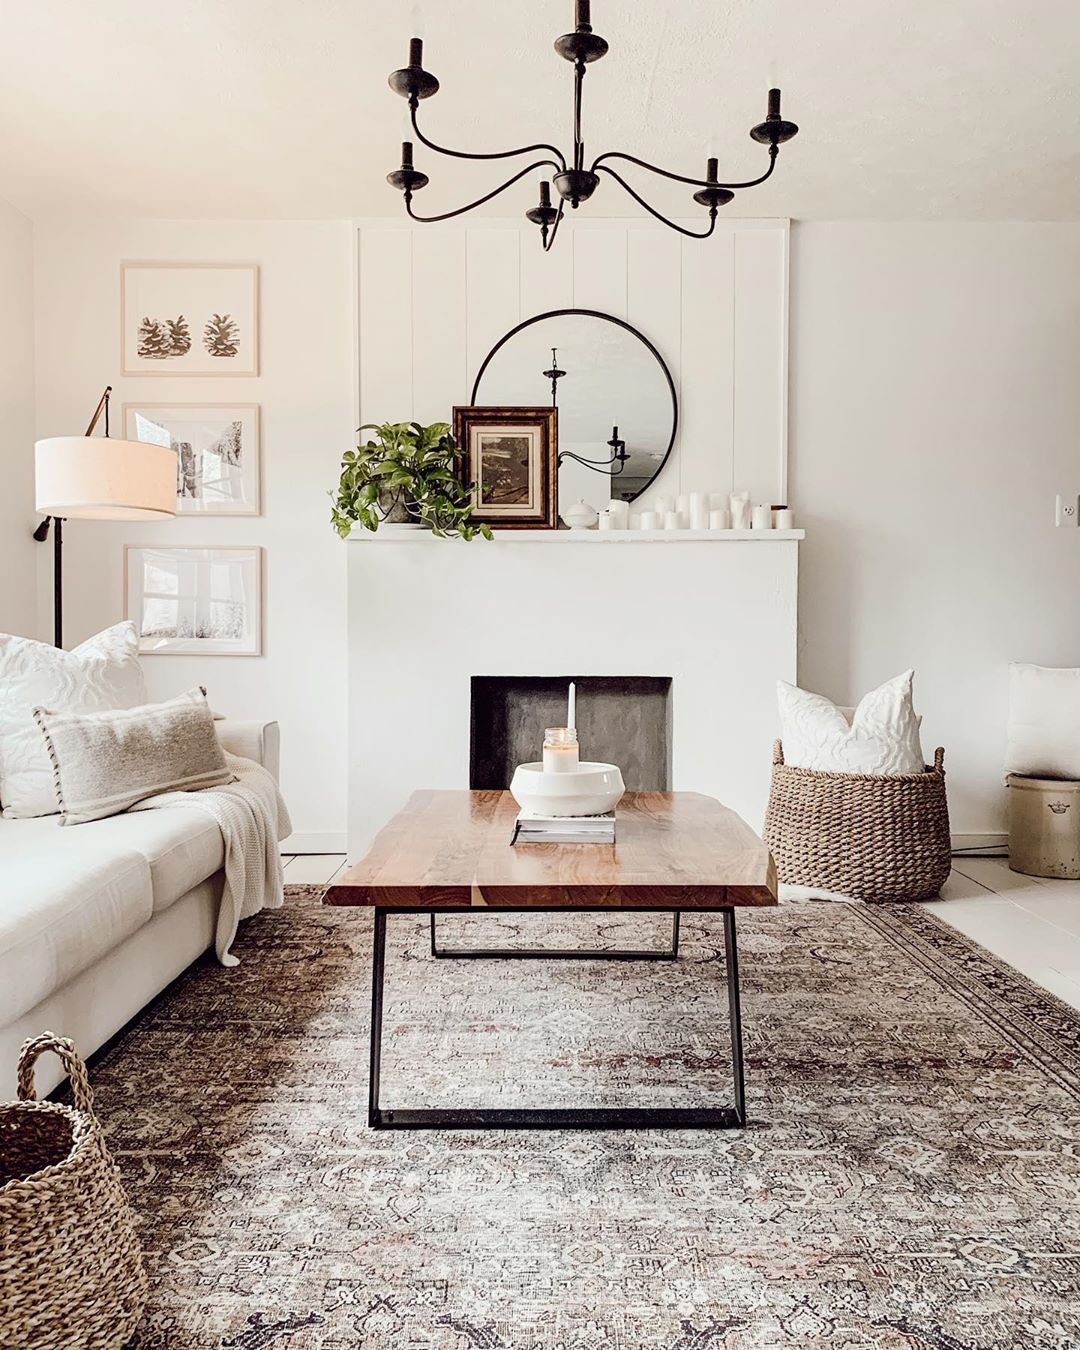 Margaret On Instagram If I Don T Post For A Few Days You Can Almost Guarantee That I M Up To N Home Living Room Living Room Inspiration Apartment Living Room Living room no rug